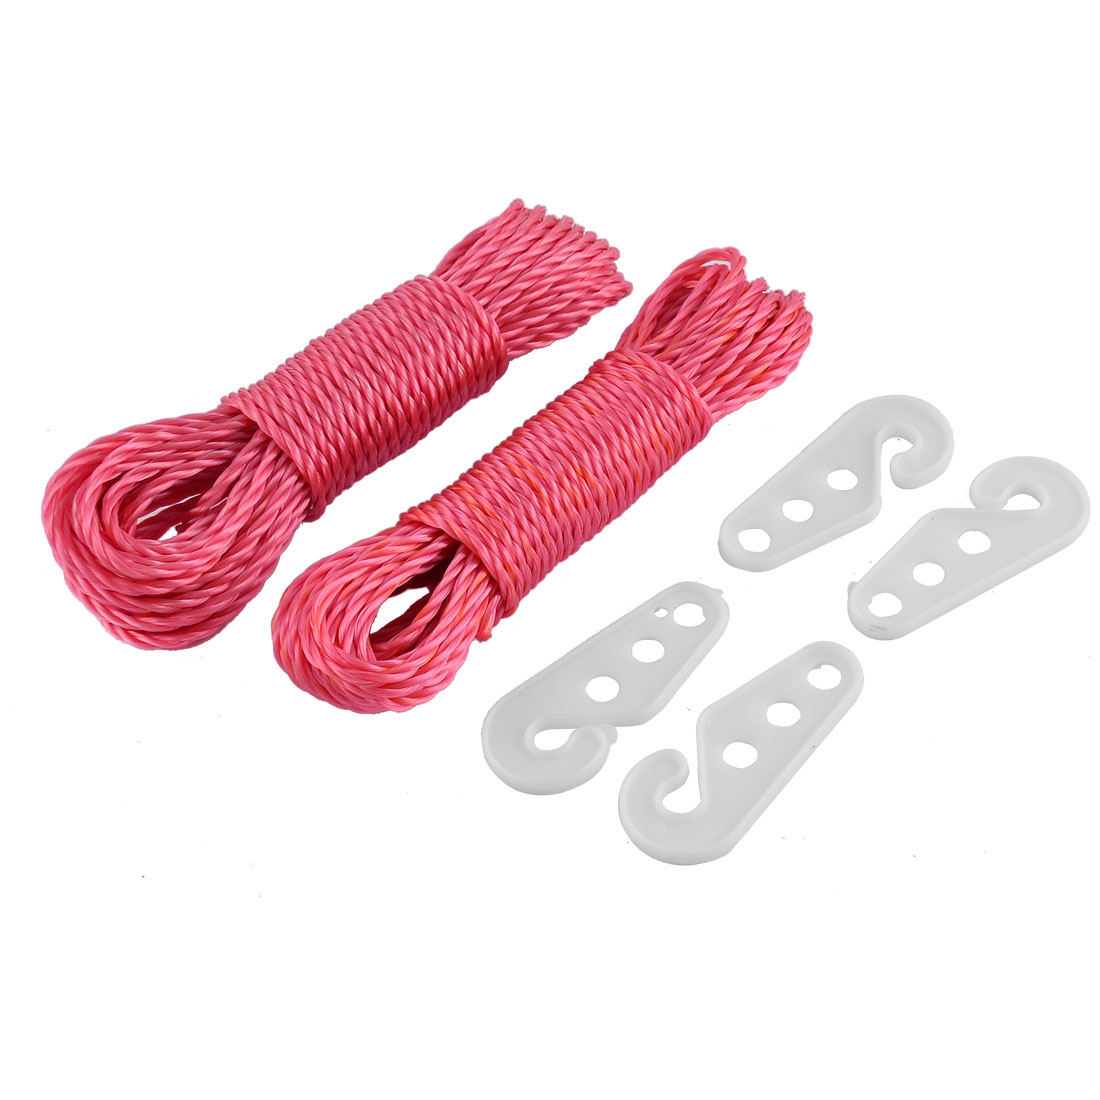 Laundry Indoor Outdoor Clothesline Cloths Line Rope String 33Ft Fuchsia 2 Pcs